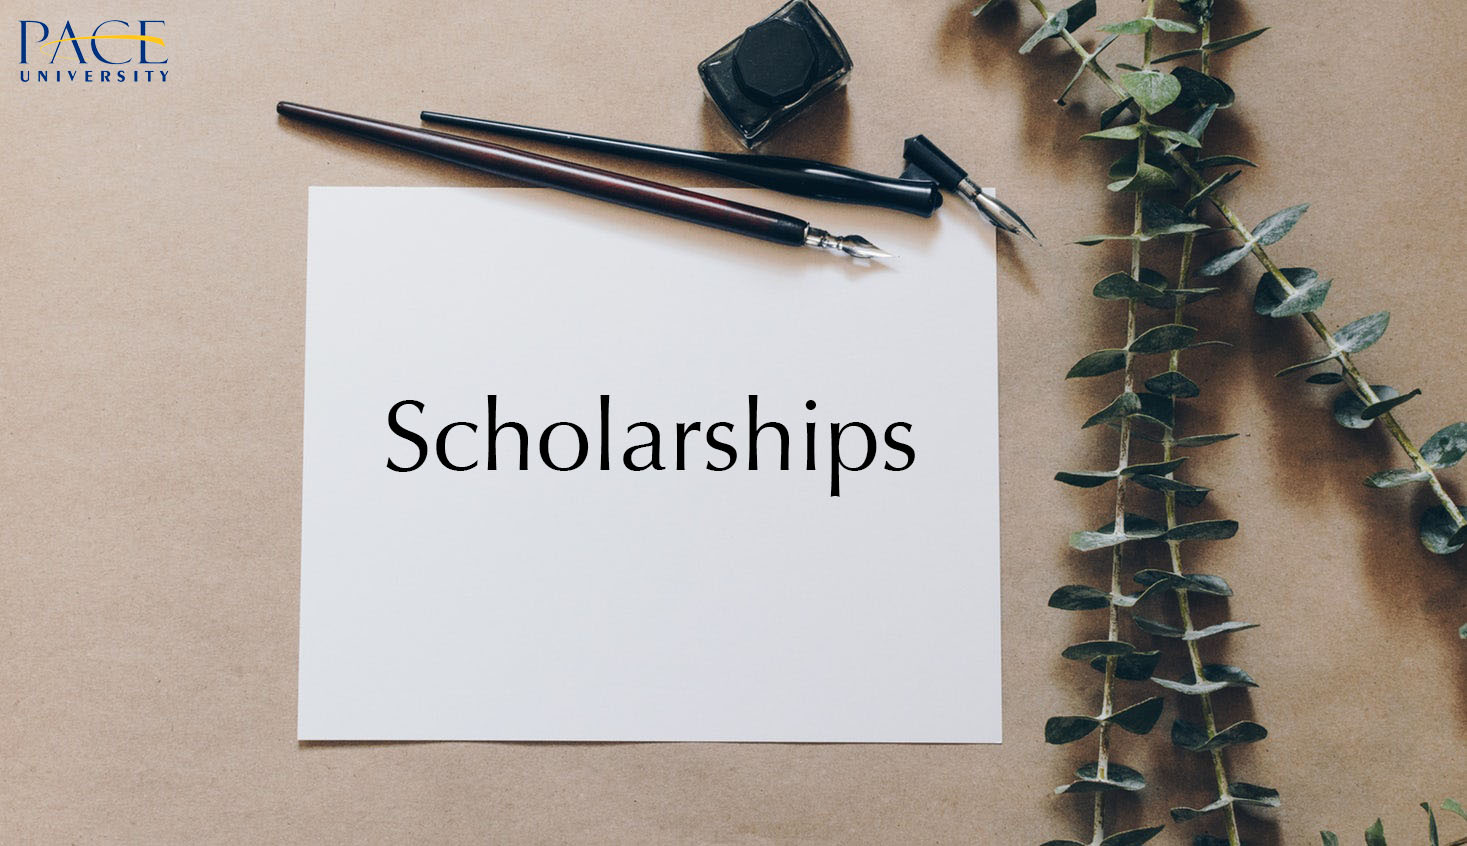 The Deadline for the Edgell & Littleford Scholarship has been extended to FEBRUARY 20